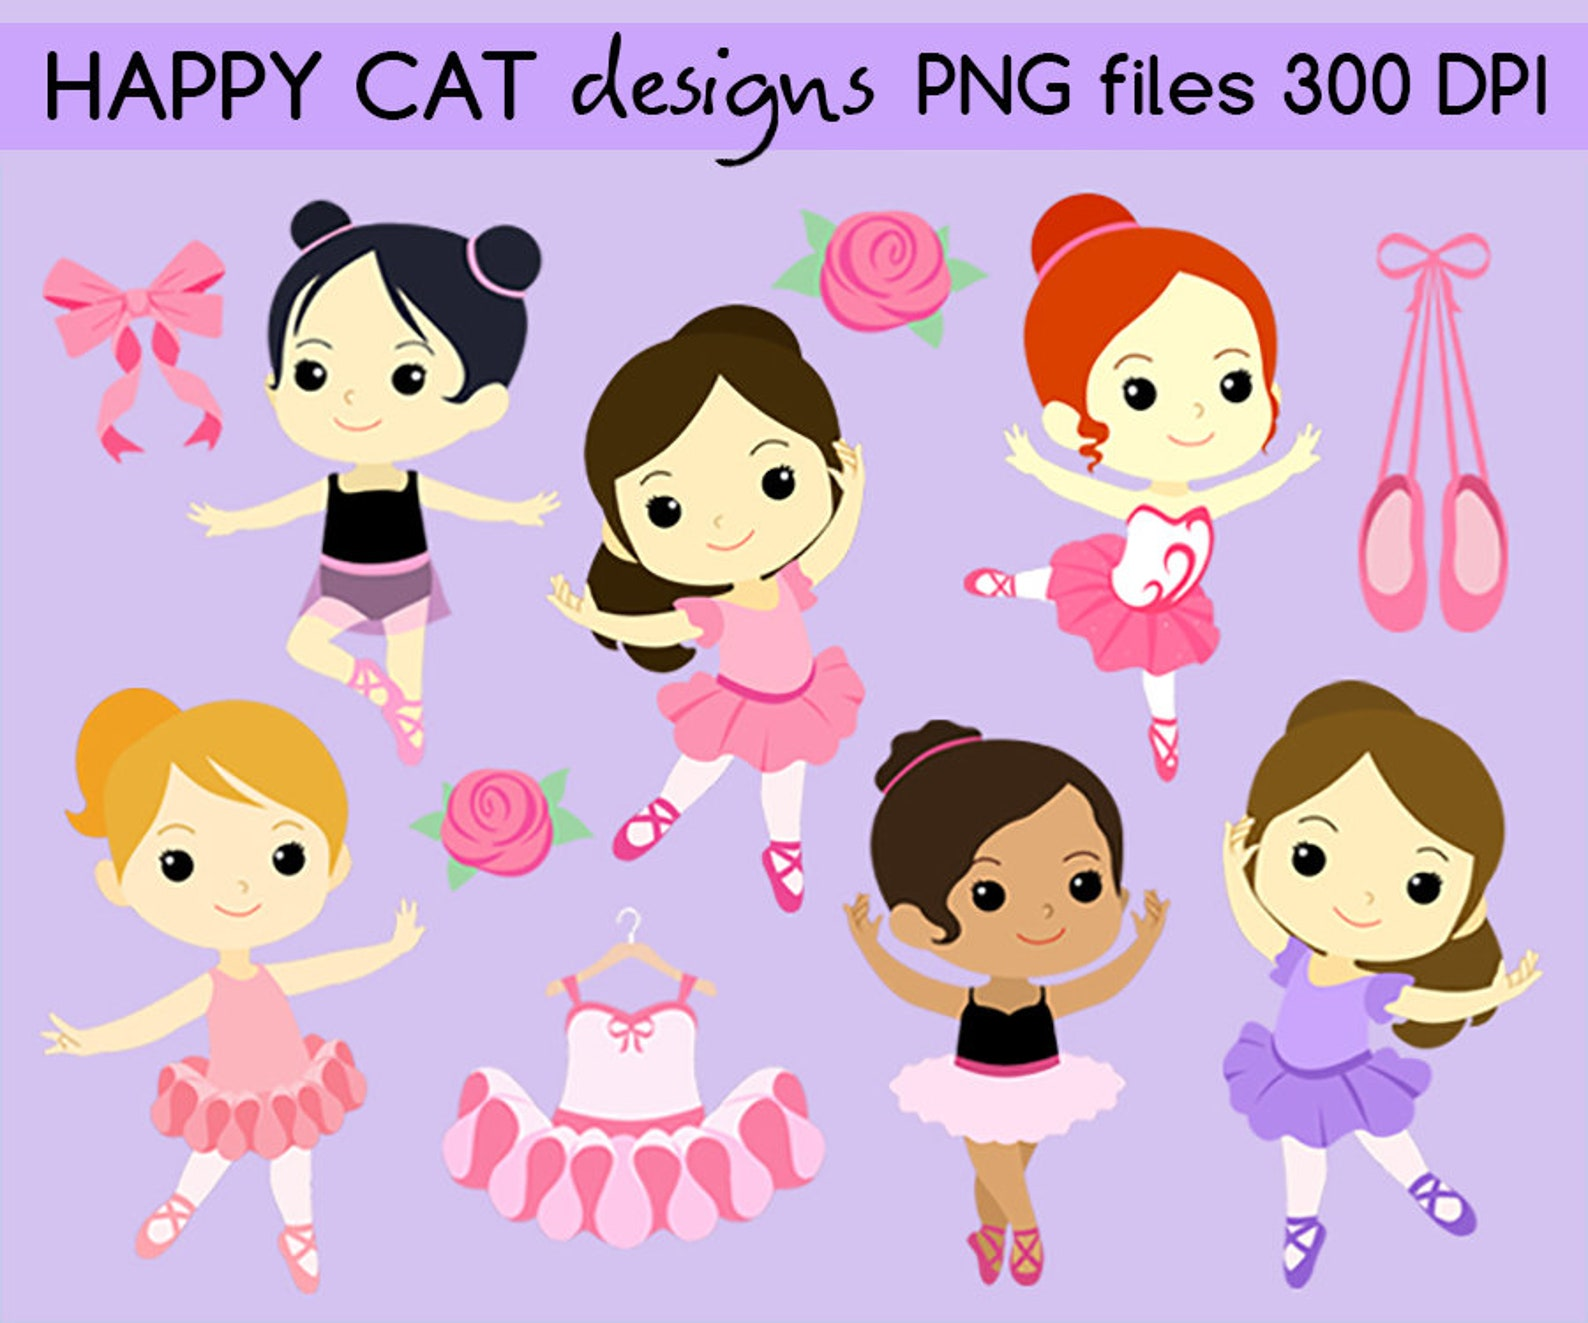 cute ballerina ballet girls clip art set png files 300 dpi - commercial small business use